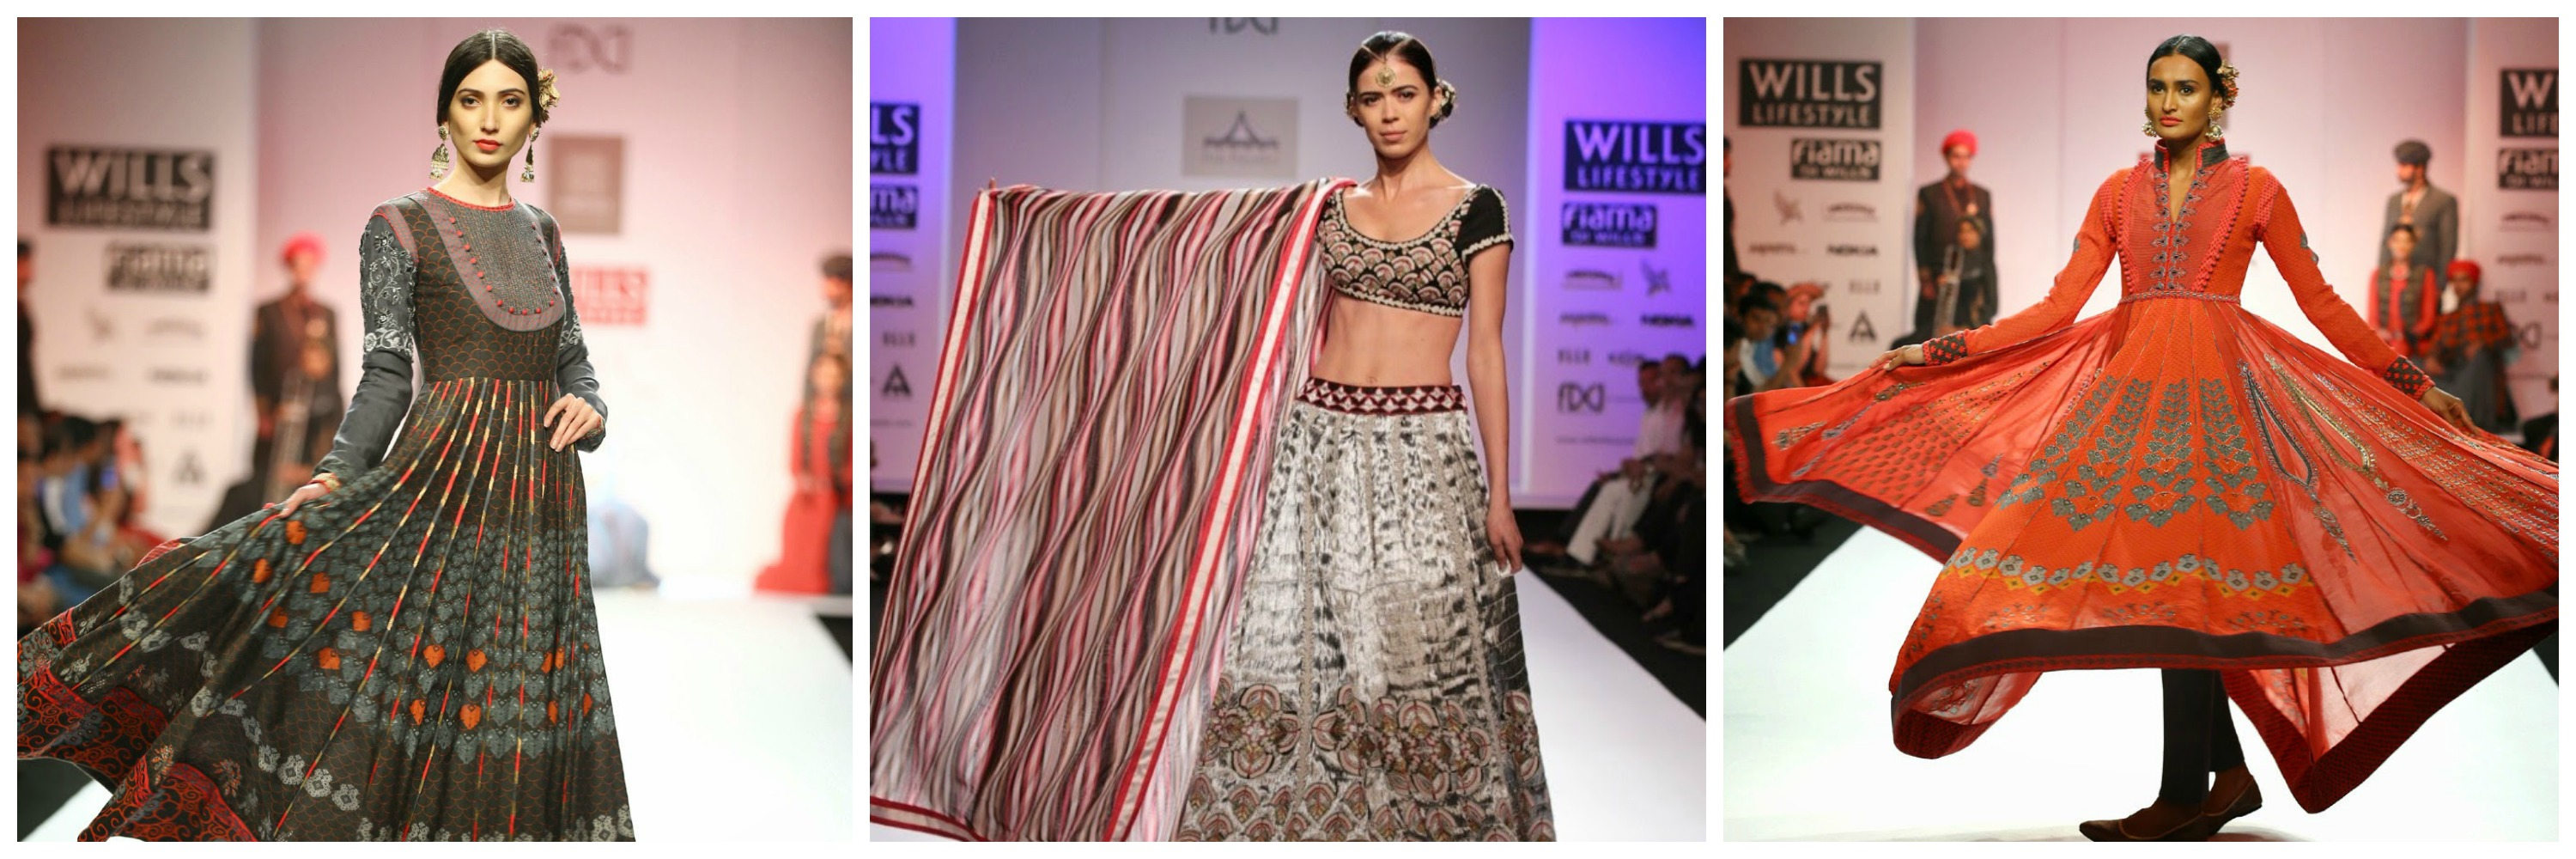 Wills Lifestyle India Fashion Week '14: Trend Review